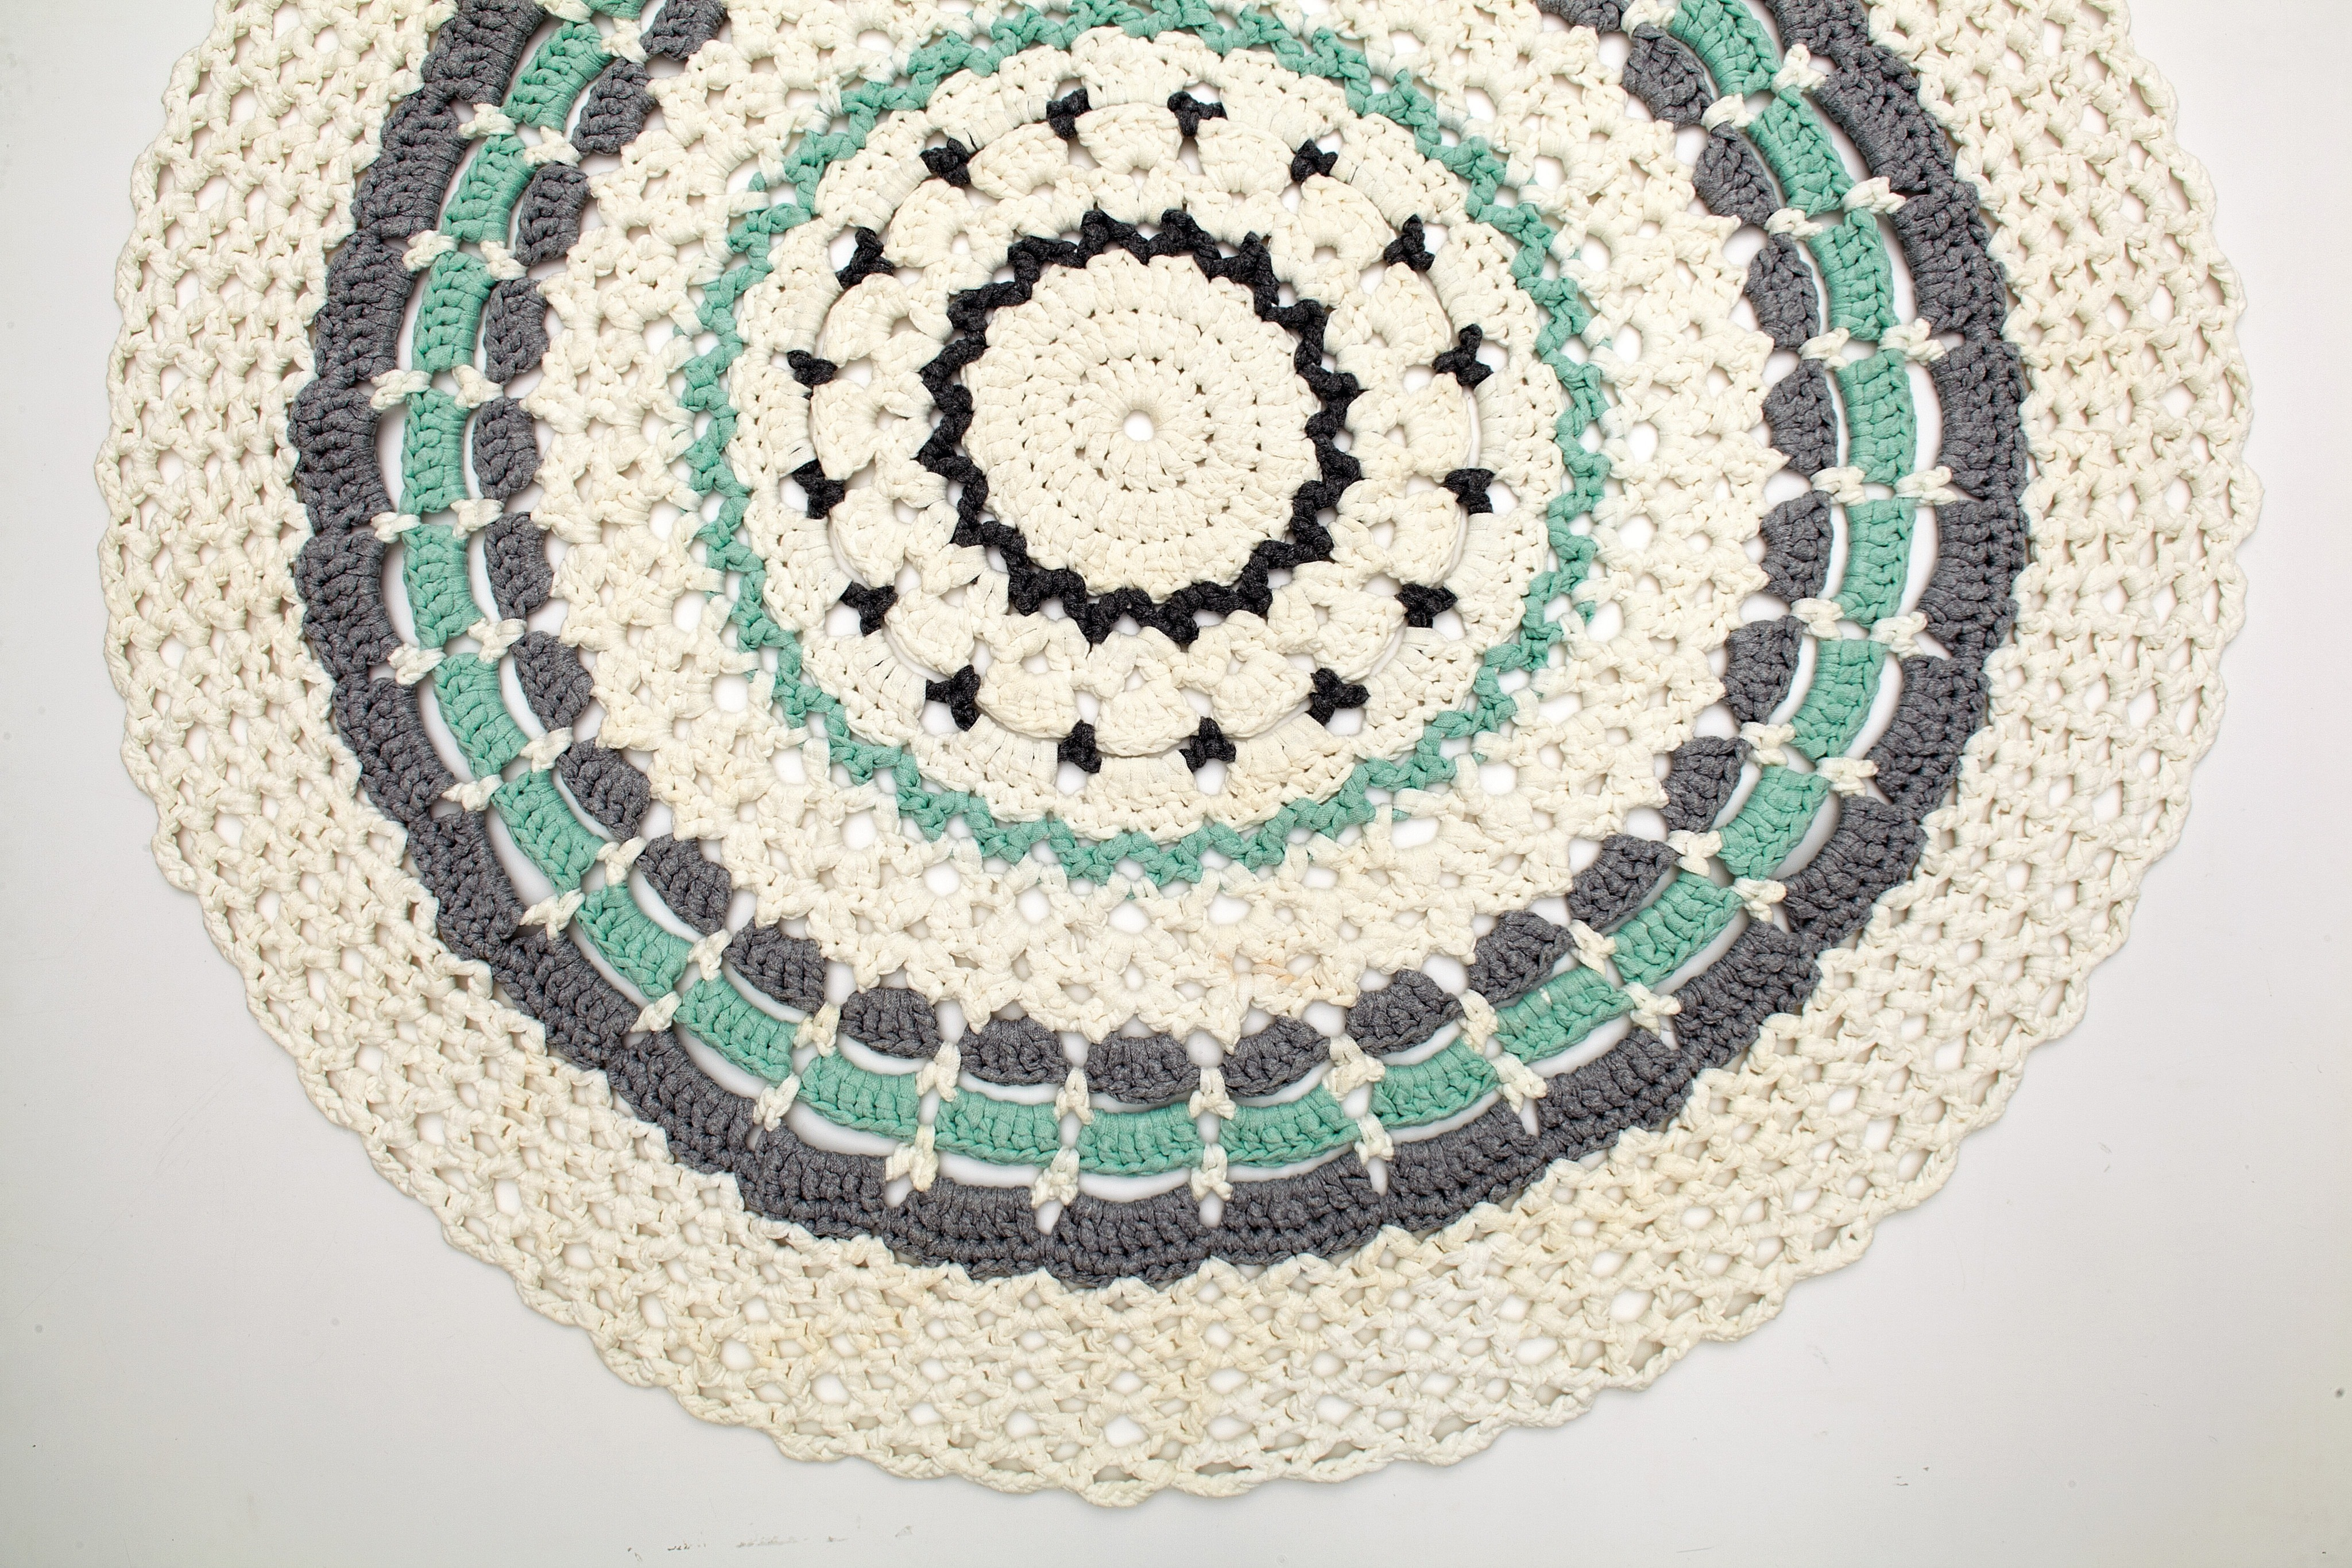 Marvellous Myriad Rug · Extract from Mandalas to Crochet by Haafner ...